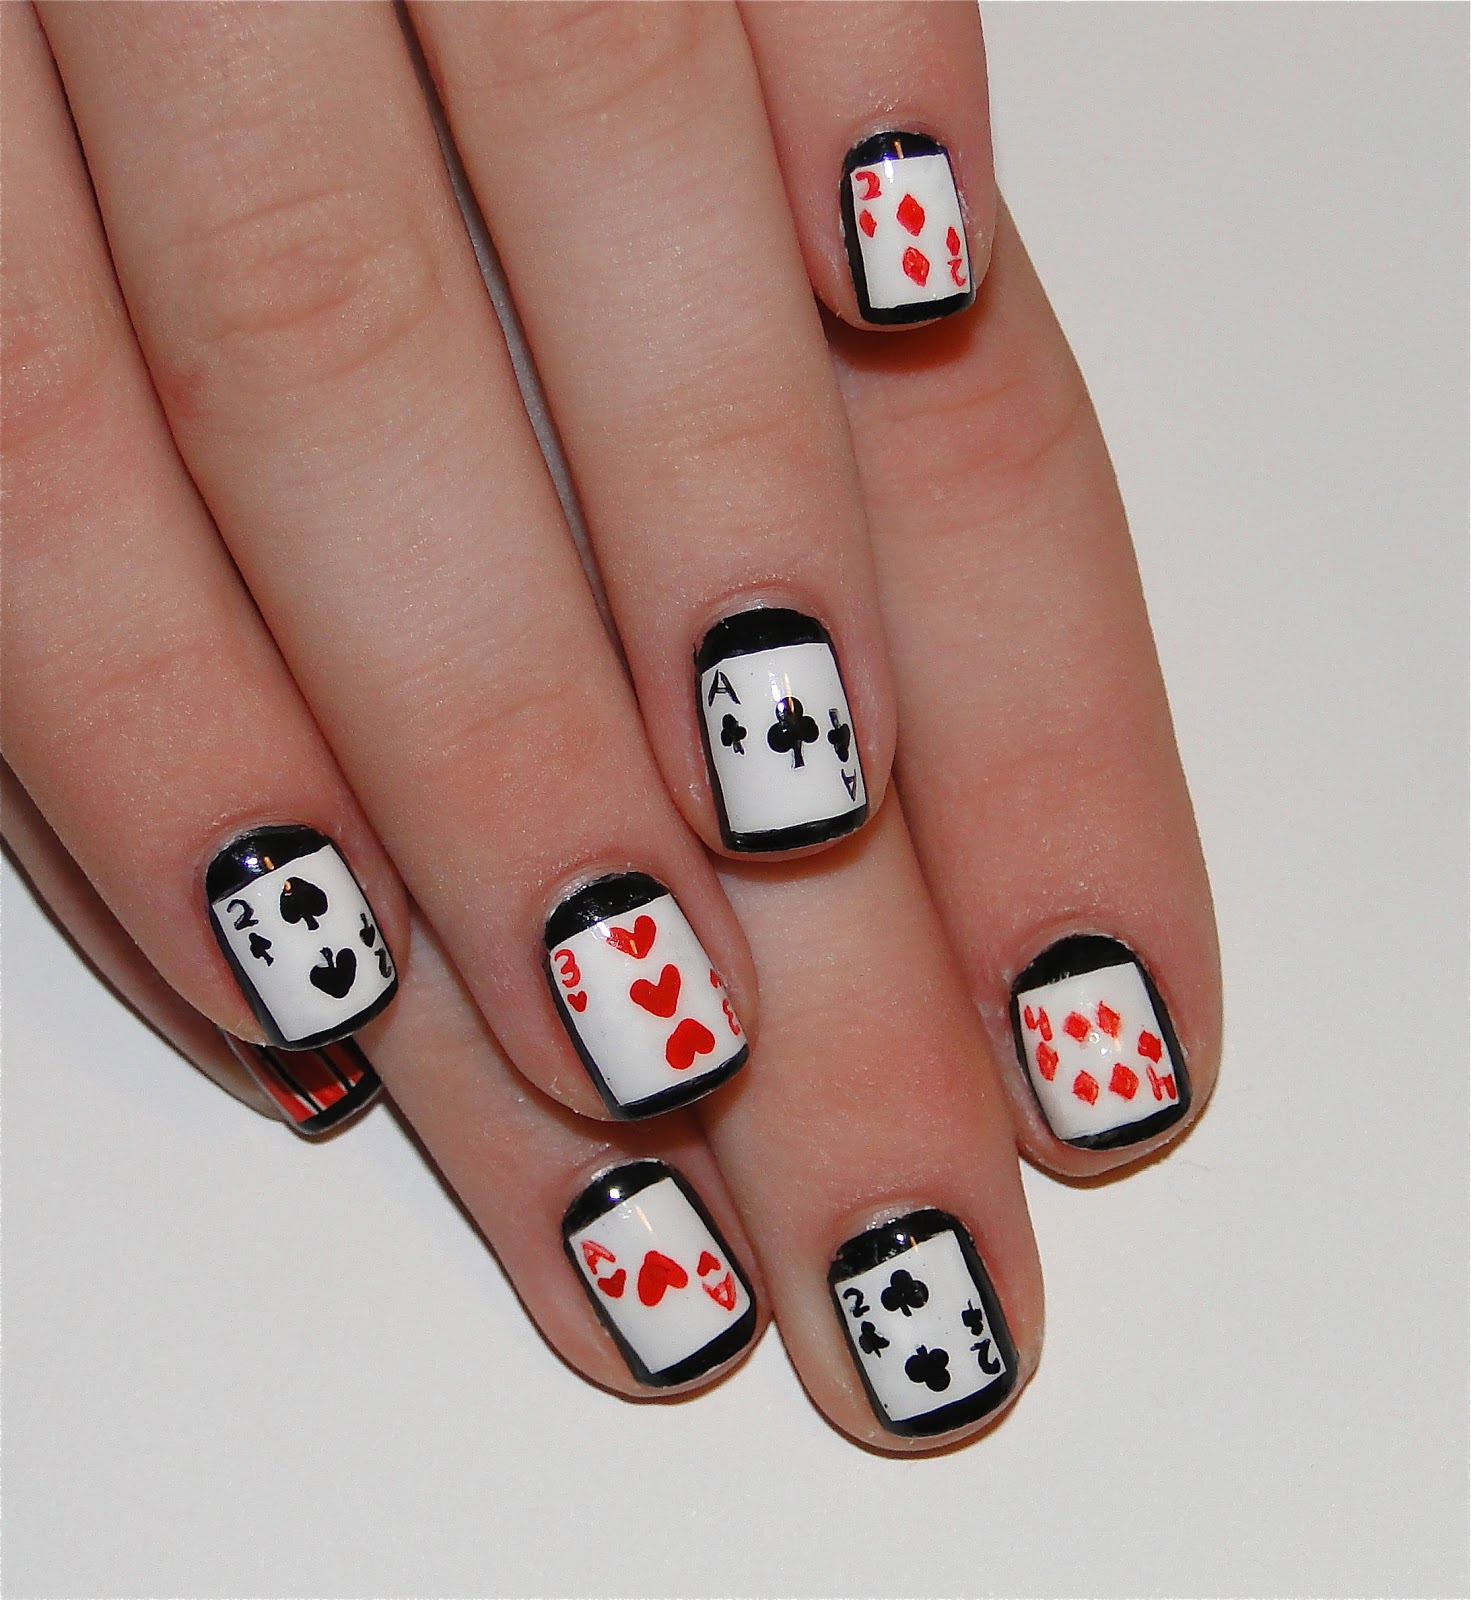 Nail Design With Cards: Off with their heads queen of hearts nail ...